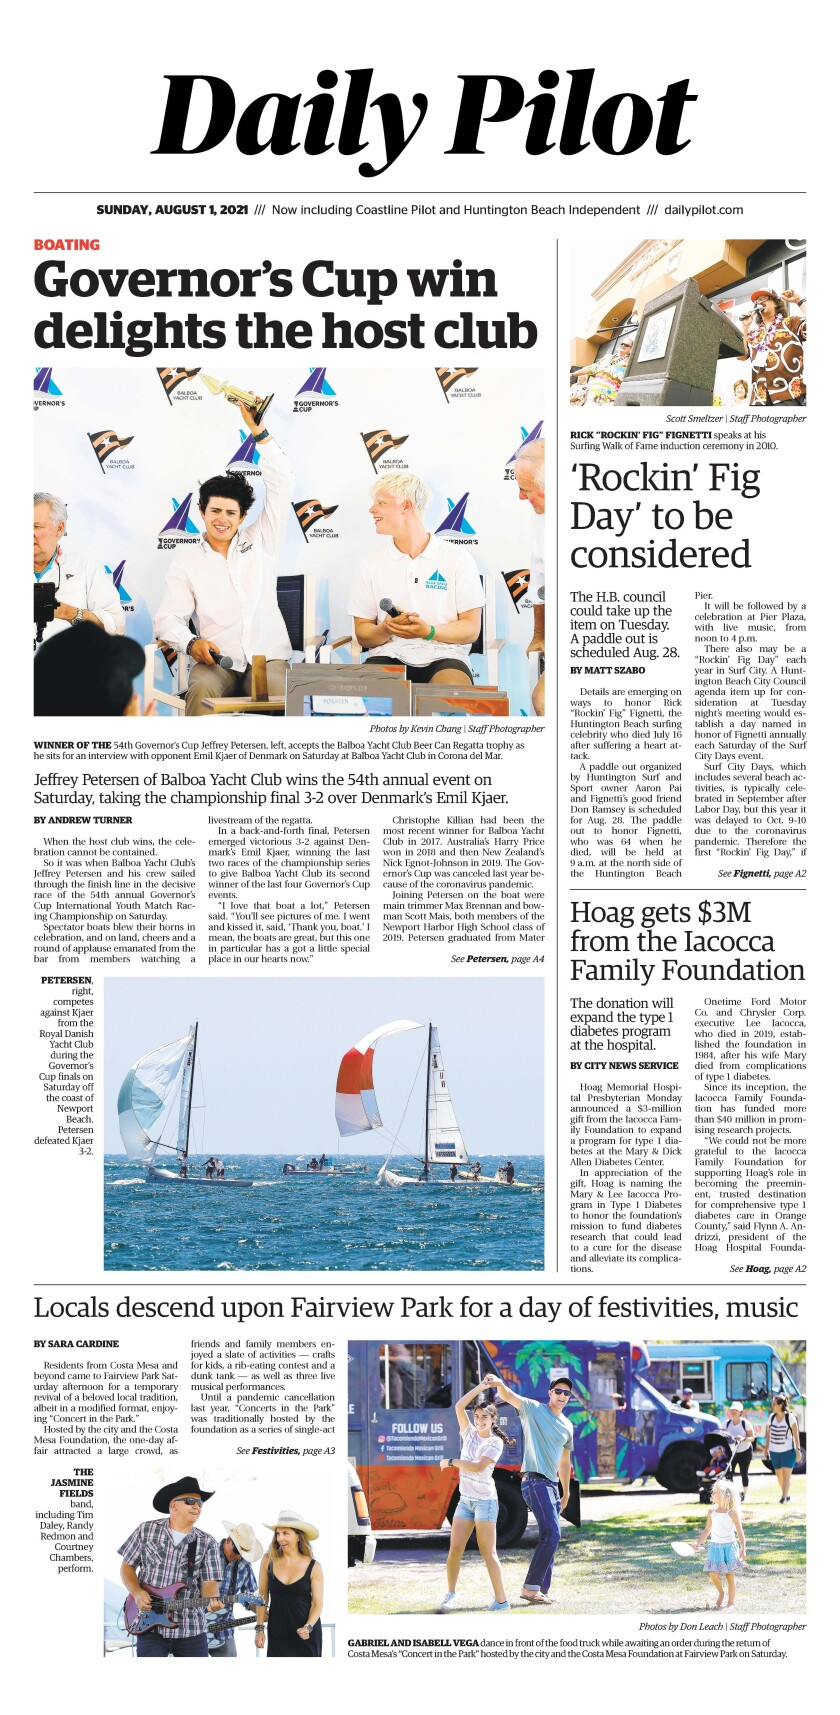 Front page of Daily Pilot e-newspaper for Sunday, August 1, 2021.